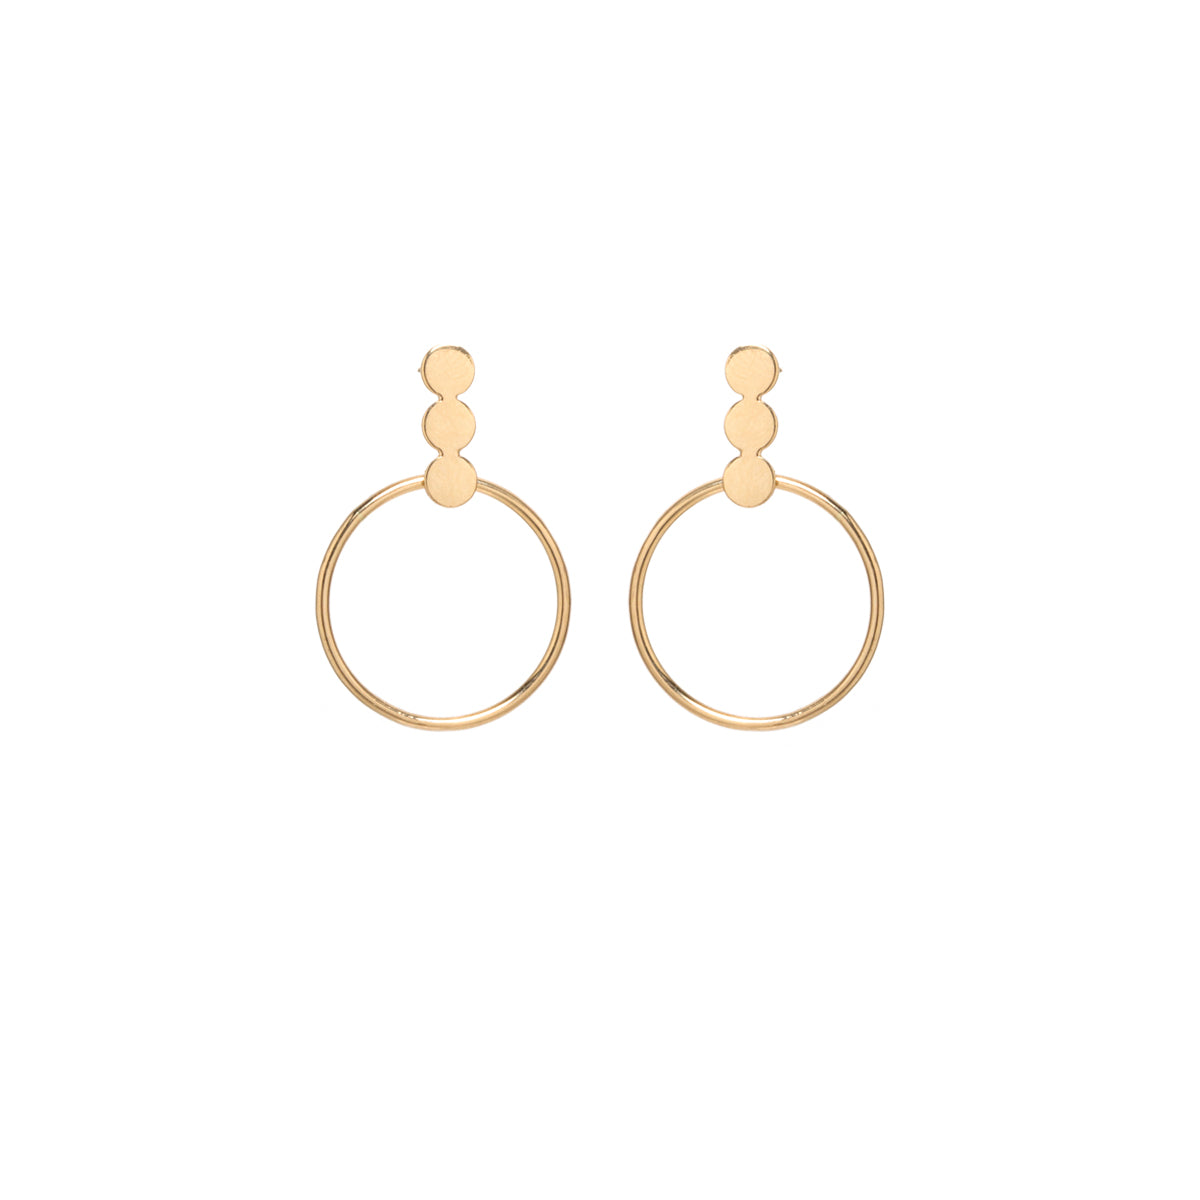 Zoë Chicco 14kt Yellow Gold 3 Disc and Circle Post Earrings